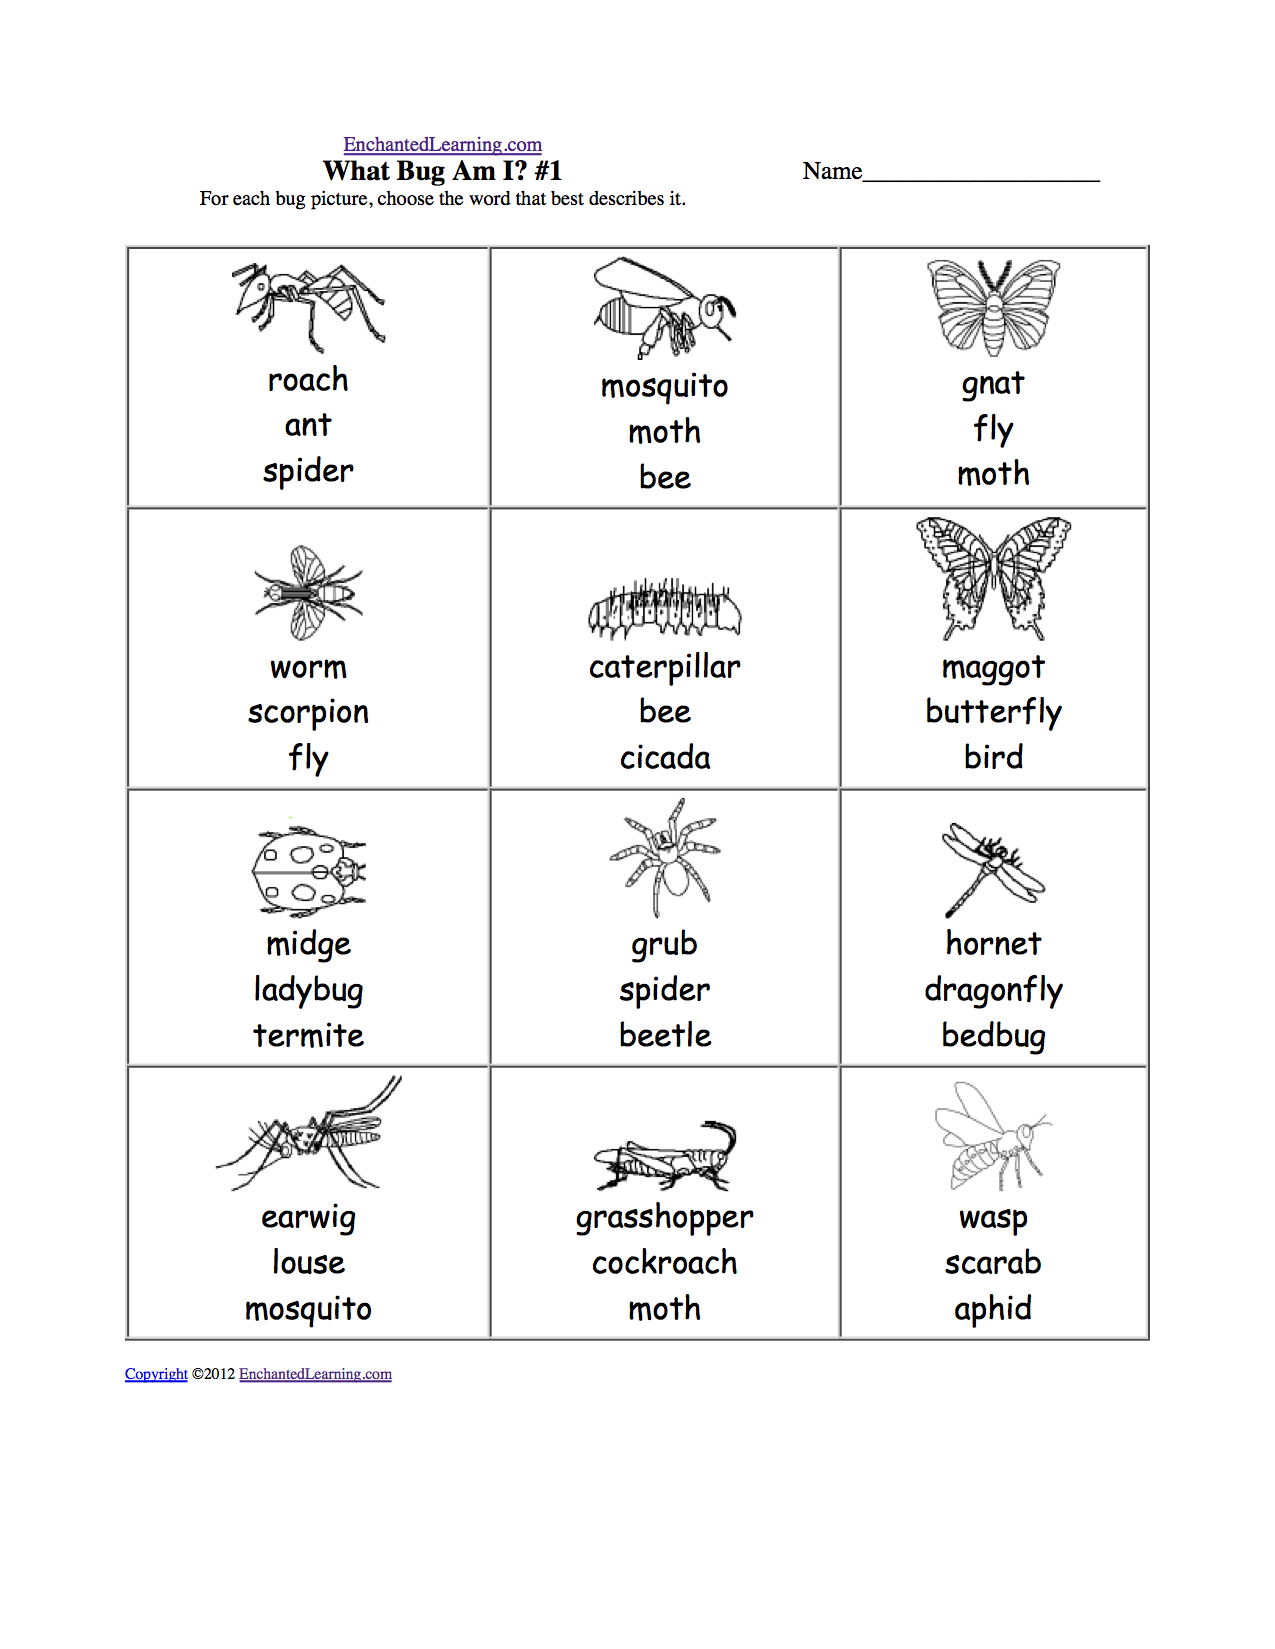 Aldiablosus  Terrific What Am I Worksheet Printouts  Enchantedlearningcom With Handsome Math Worksheets For Grade  Multiplication Besides Fractions Of A Whole Number Worksheet Furthermore Grammar For Th Grade Worksheets With Comely Constructing Bar Graphs Worksheets Also Maths Worksheets Ks Printable In Addition Parallel Circuit Worksheets And Kinds Of Verbs Worksheets As Well As Puzzle Worksheets For Kindergarten Additionally Writing Metaphors Worksheet From Enchantedlearningcom With Aldiablosus  Handsome What Am I Worksheet Printouts  Enchantedlearningcom With Comely Math Worksheets For Grade  Multiplication Besides Fractions Of A Whole Number Worksheet Furthermore Grammar For Th Grade Worksheets And Terrific Constructing Bar Graphs Worksheets Also Maths Worksheets Ks Printable In Addition Parallel Circuit Worksheets From Enchantedlearningcom